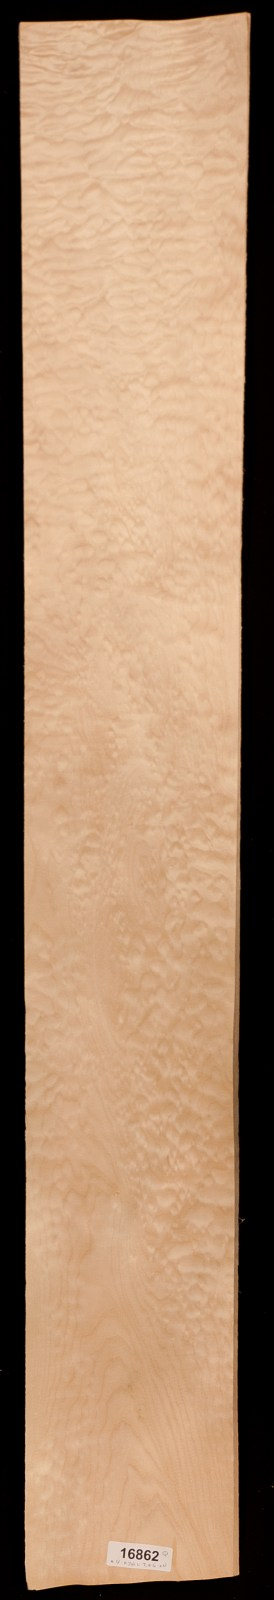 Quilted Maple Veneer Lot